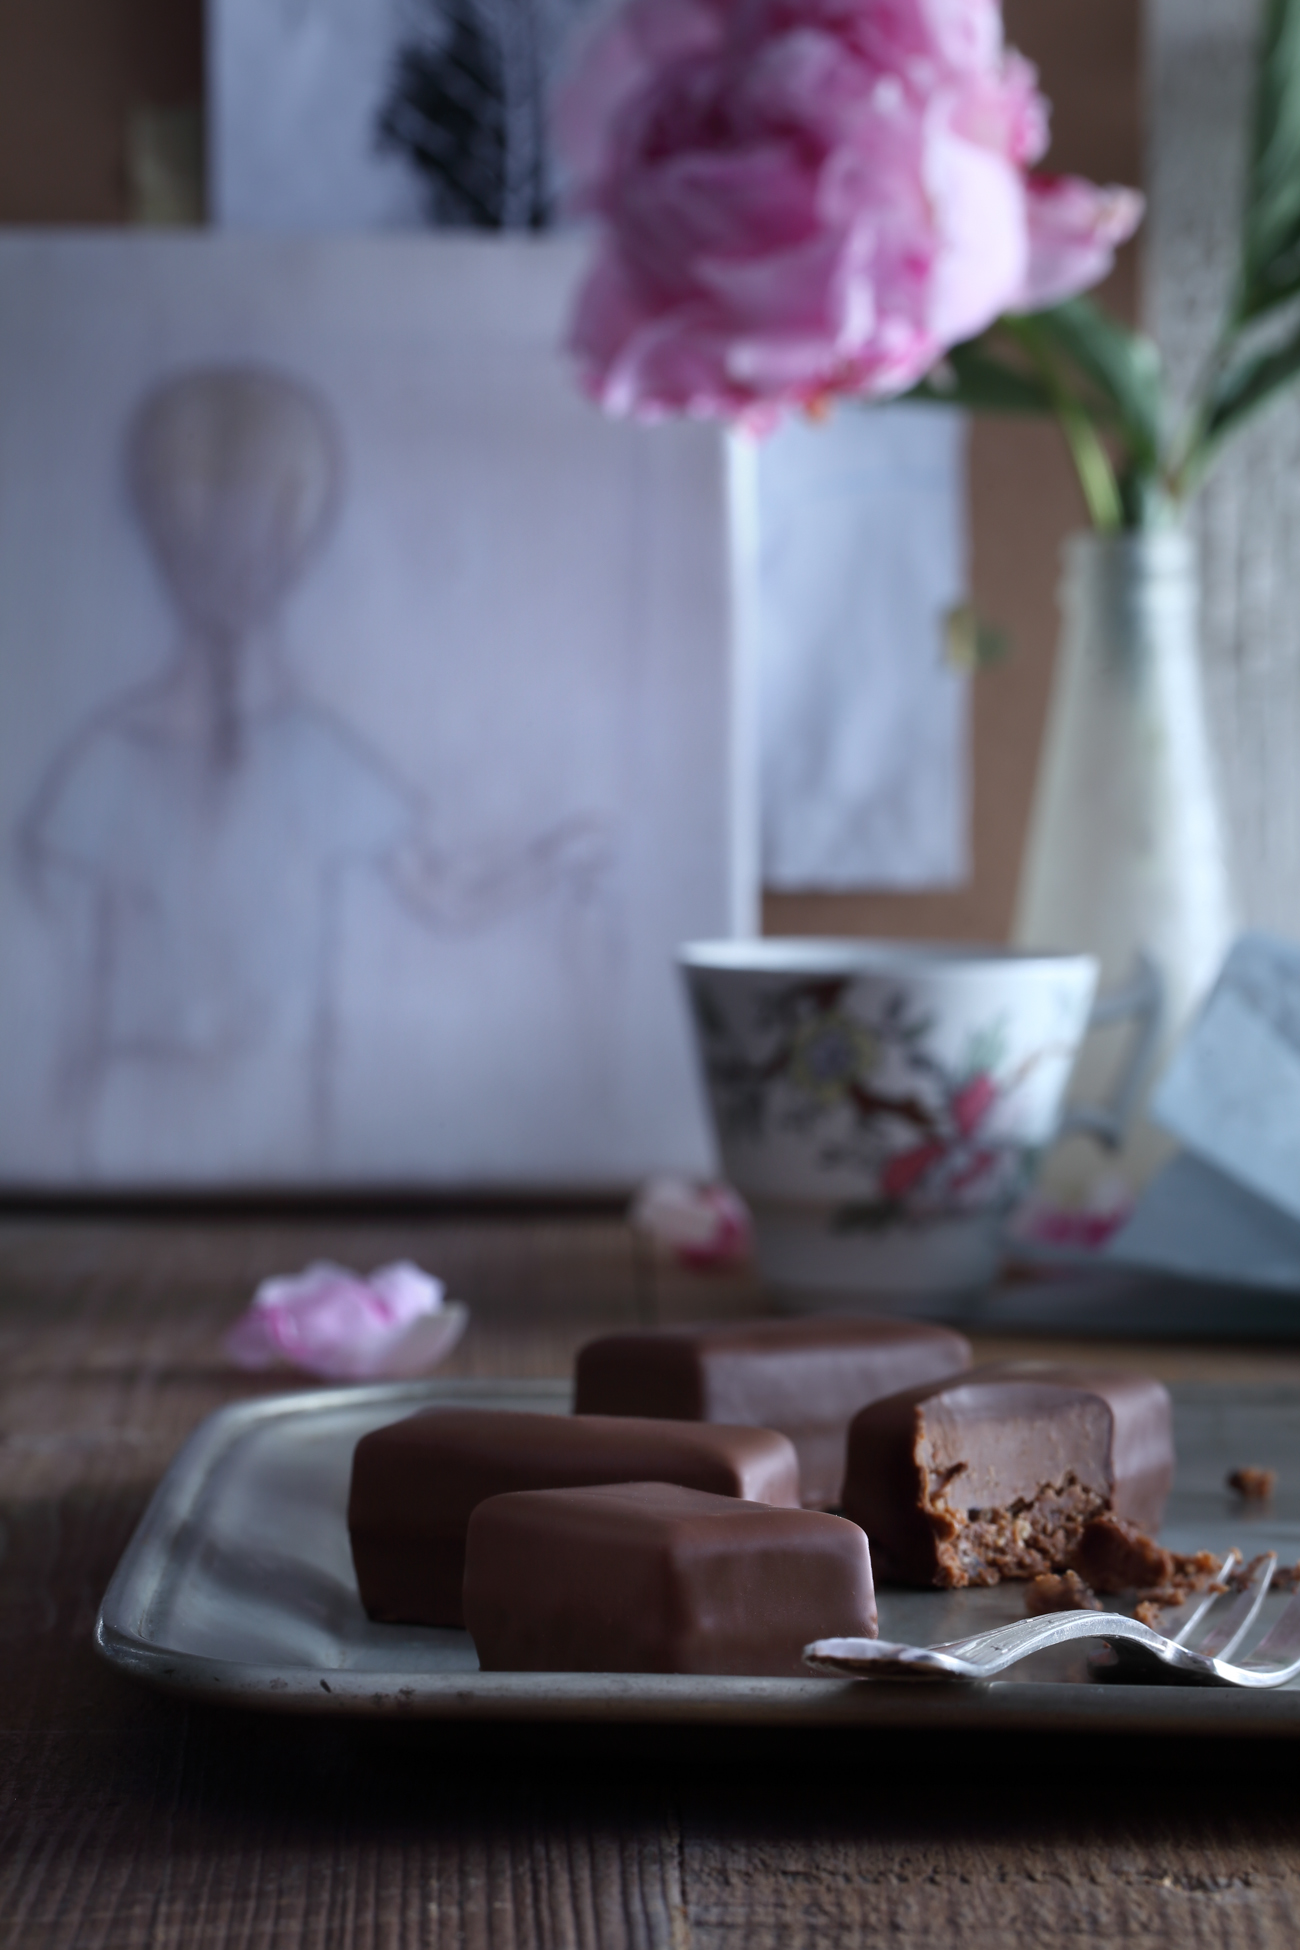 Chocolate | Book By Efrat Libfroind